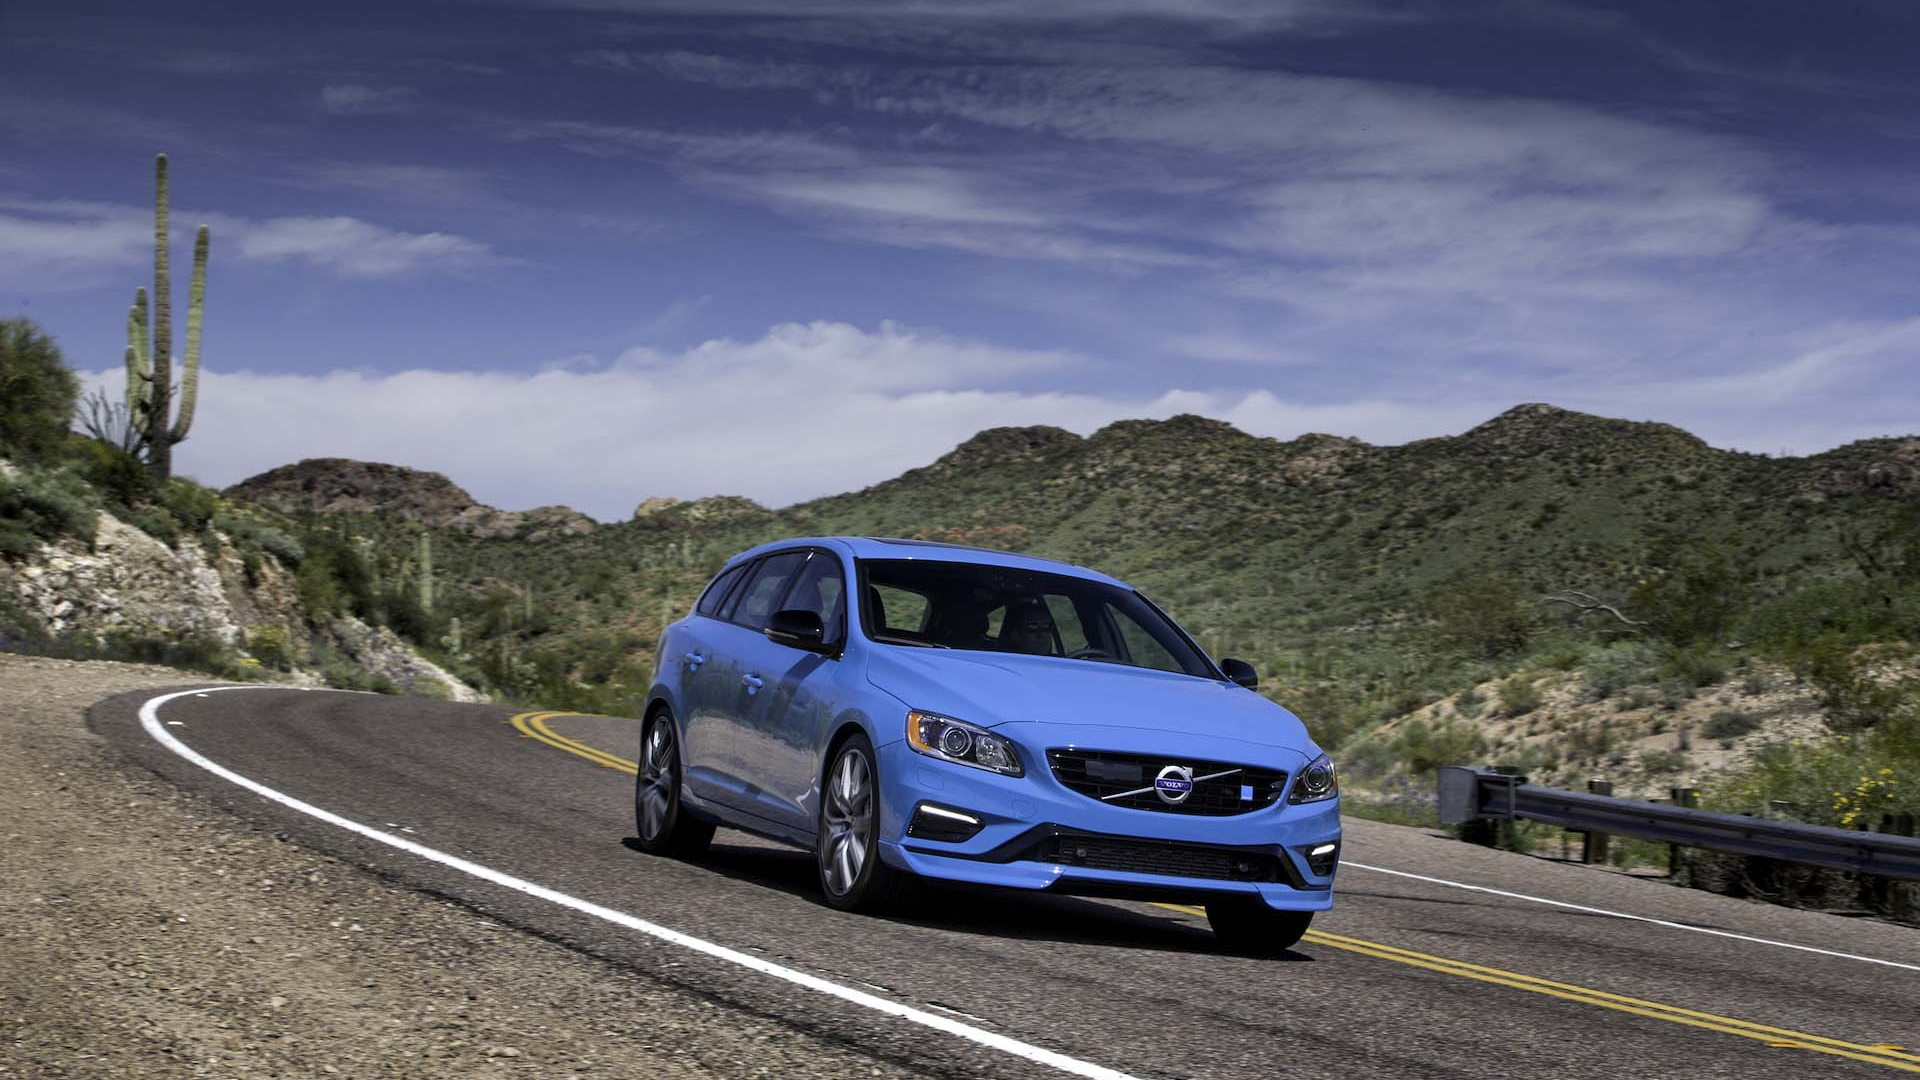 2017 volvo s60 and v60 polestar first drive review the. Black Bedroom Furniture Sets. Home Design Ideas